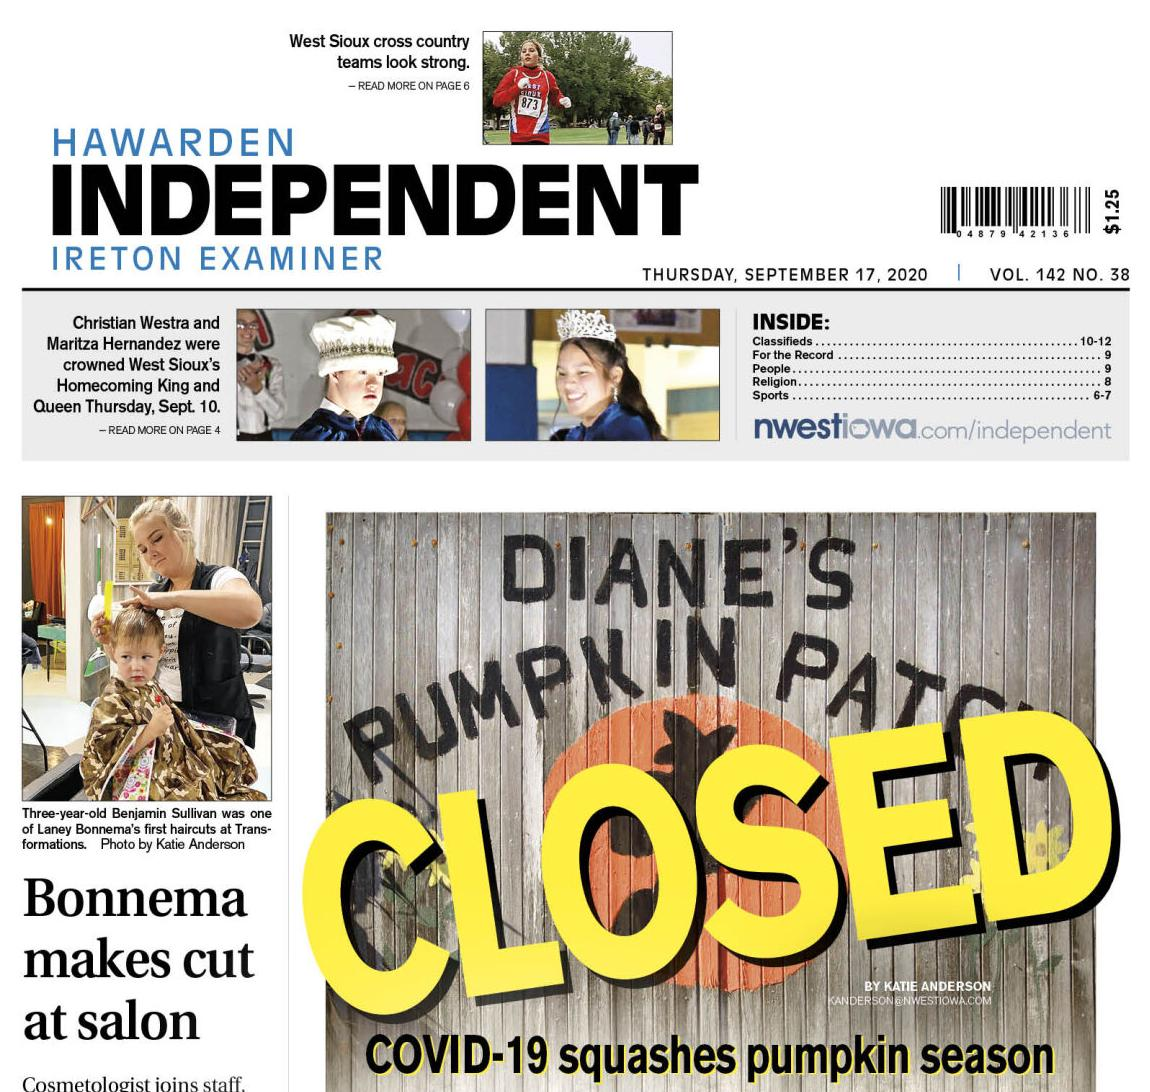 Hawarden Independent/Ireton Examiner Sept. 17, 2020